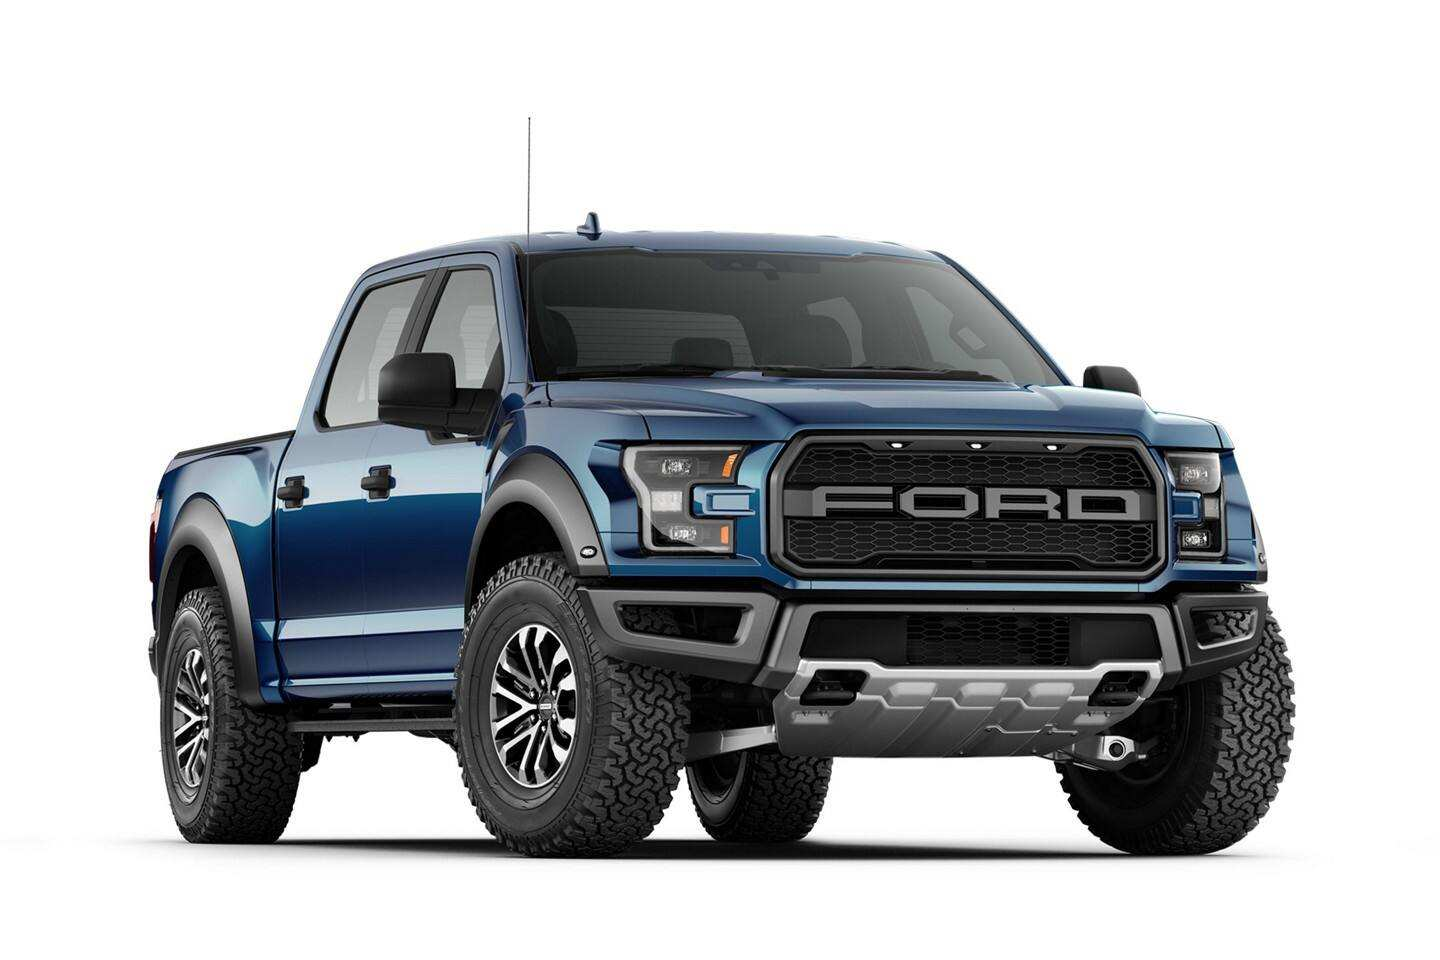 98 The Best 2020 Ford F 150 Diesel Specs Pictures